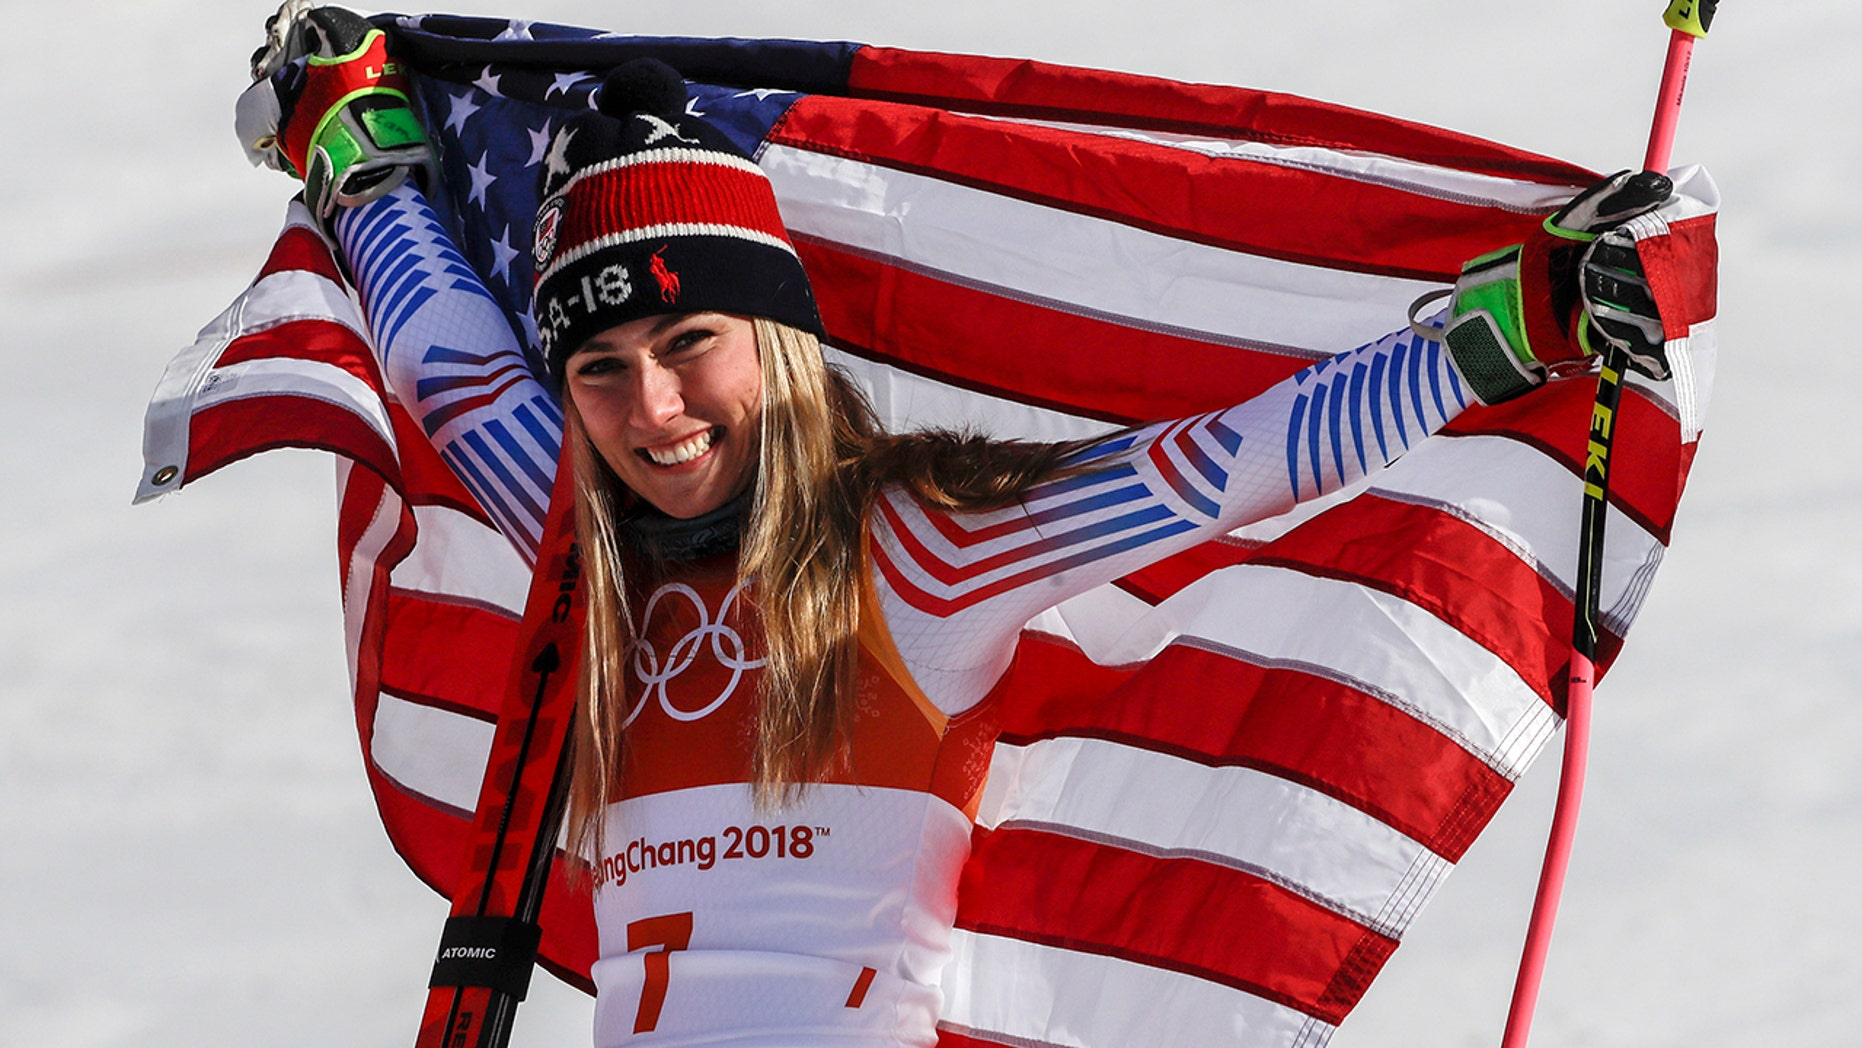 Mikaela Shiffrin celebrates her gold medal after placing first in the women's giant slalom at the 2018 Winter Olympics.